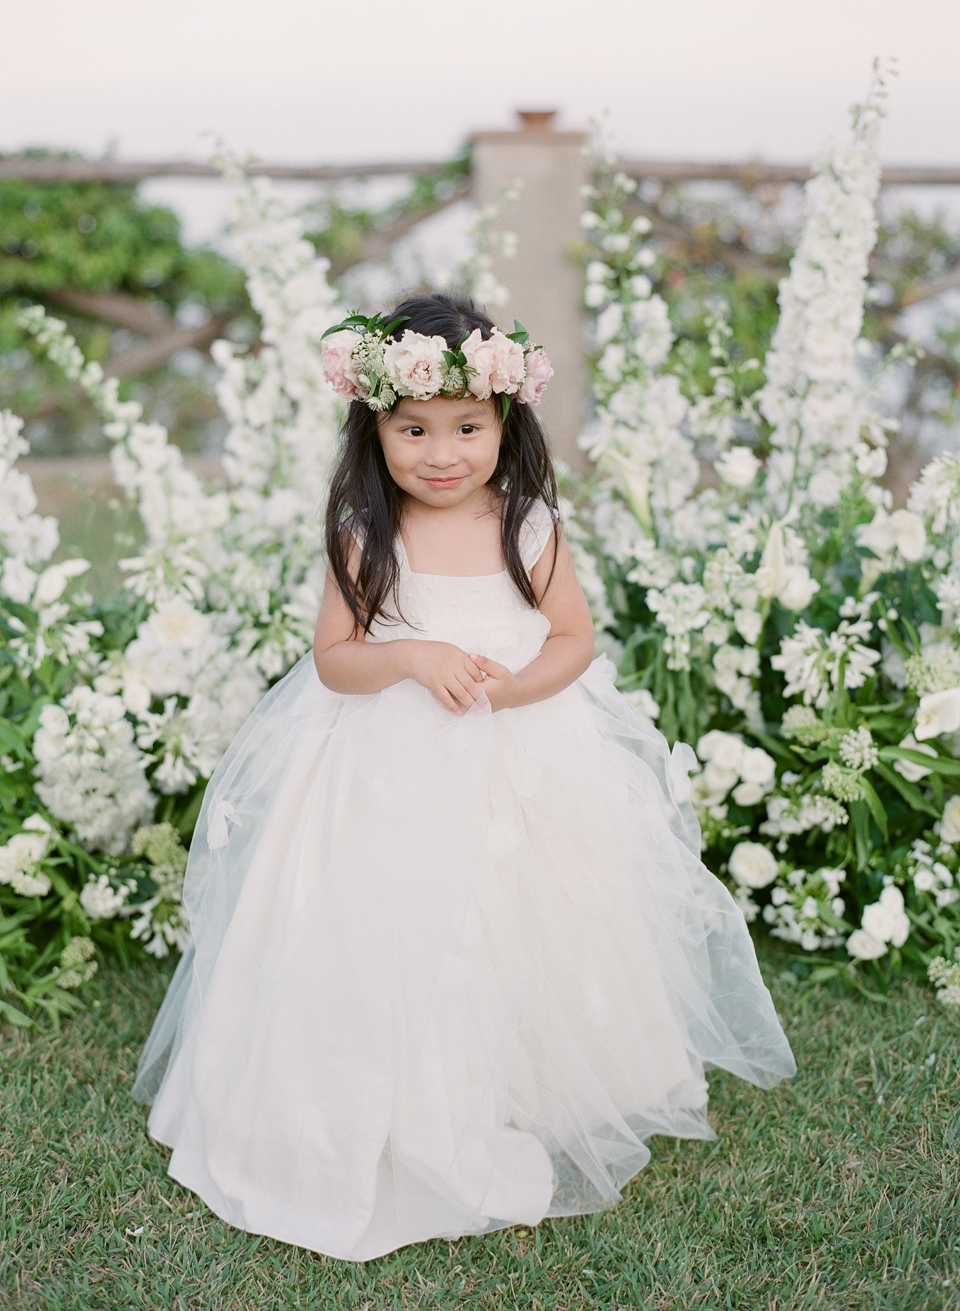 adrienne cameron wedding flower girl in white